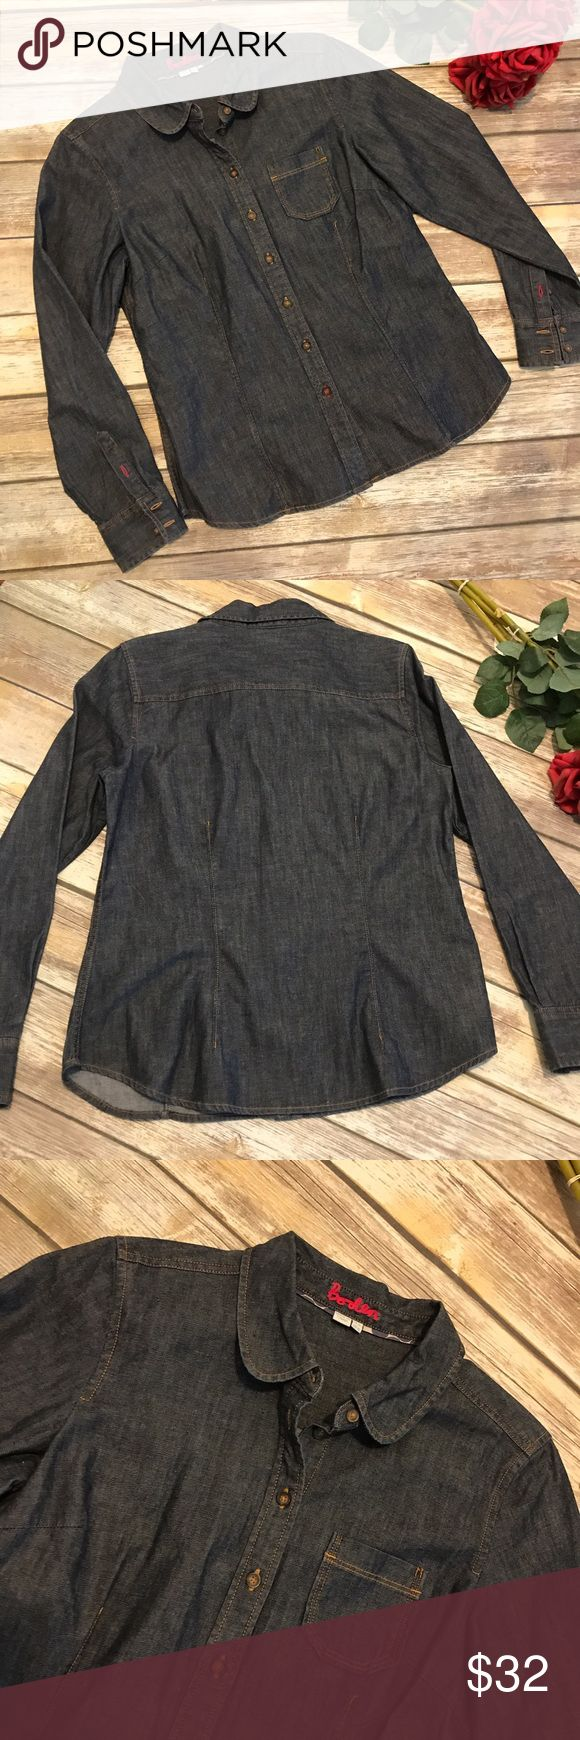 """🌹Boden Denim Shirt EUC. Wear it with everything (even your jeans) for more than a nod to the denim on denim trend. Perfect item for a capsule wardrobe! 100% cotton. Armpit to armpit approximately 19"""" laying flat. Shoulder to hem approximately 25"""". Fits more like an 8 IMO. 💰Reasonable offers welcome. All photos are taken in natural light. Photos may not be used without permission. ⬇️8/3 Boden Tops"""